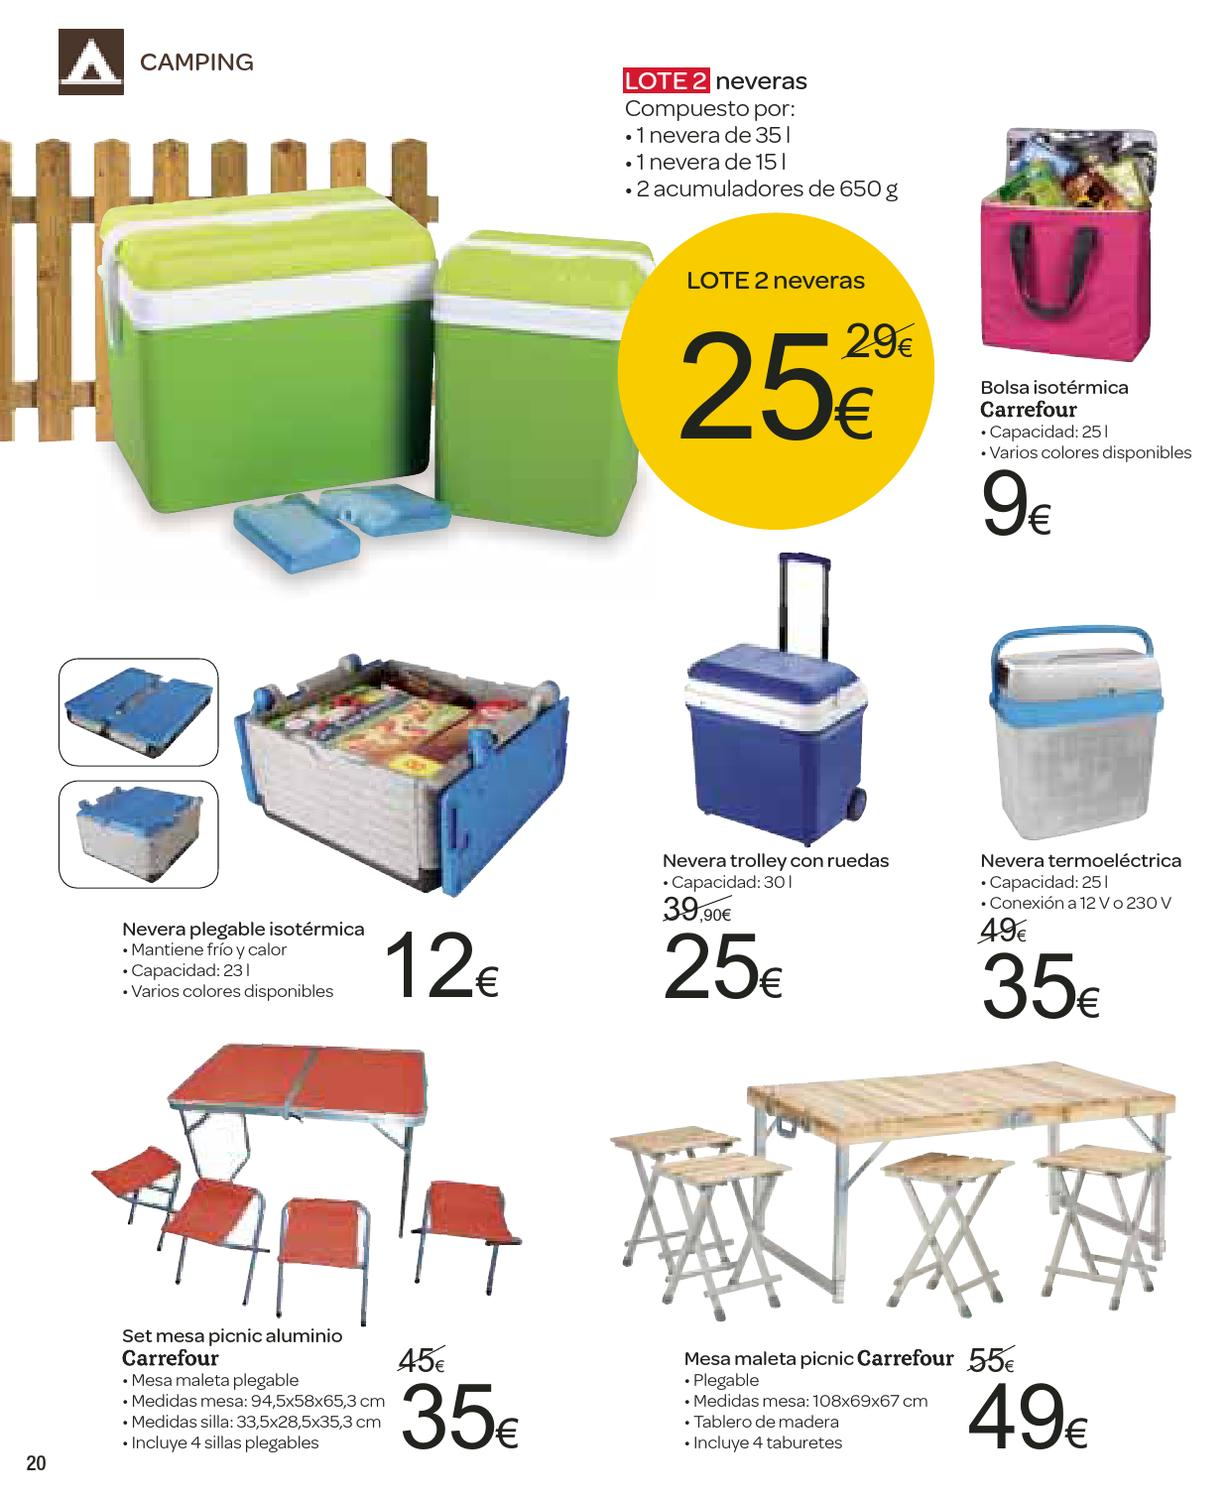 Catalogo carrefour piscinas 2013 by - Mesa plegable maleta carrefour ...